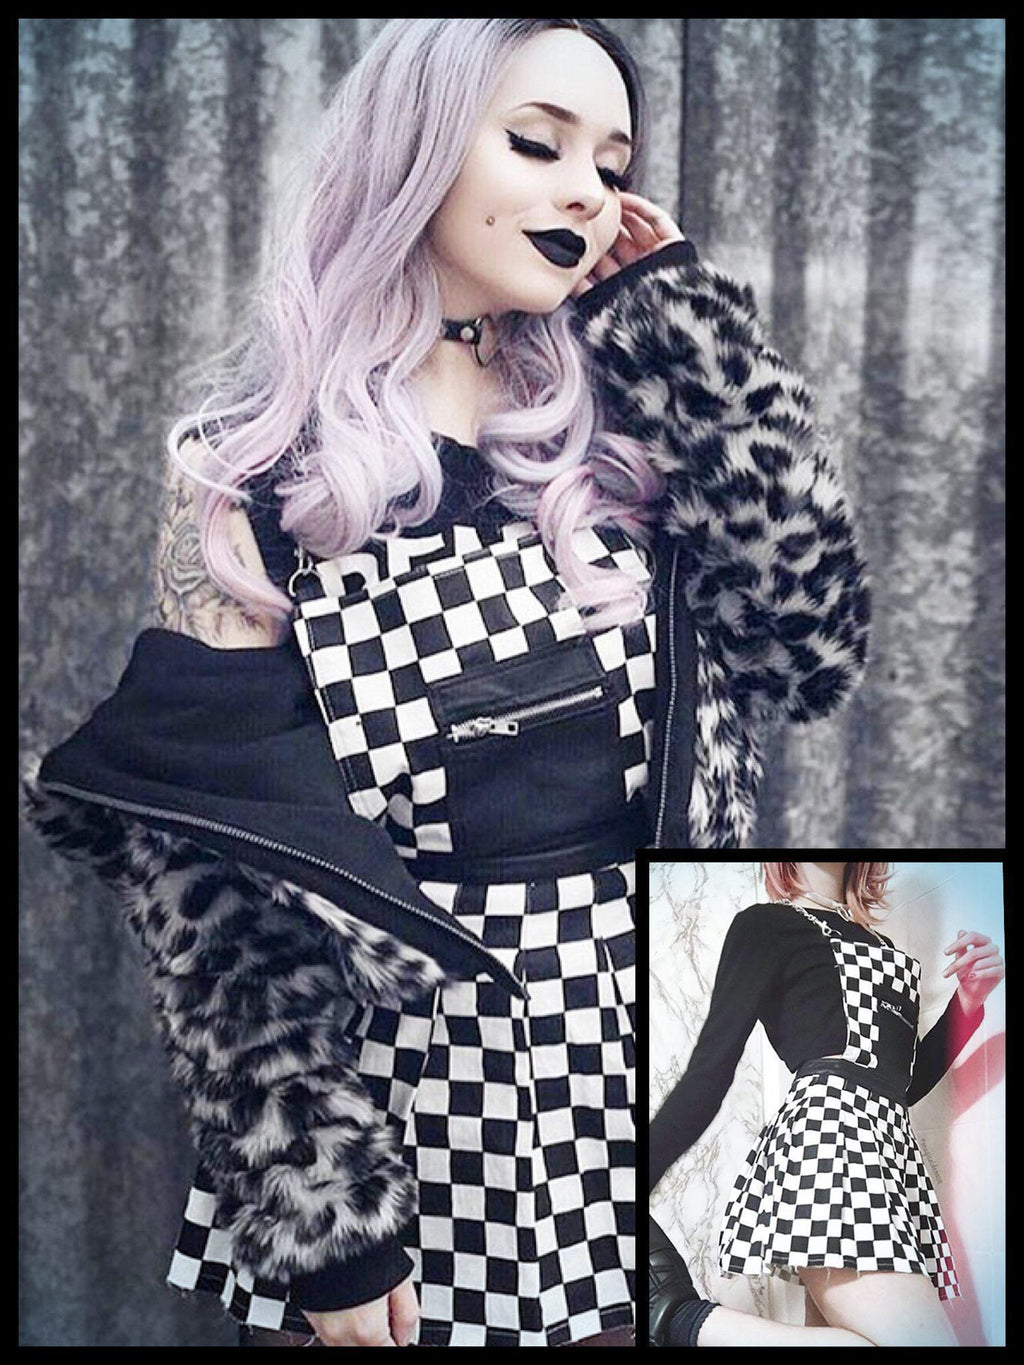 BlissGirl - Black and White Checkered Romper - S - Harajuku - Kawaii - Alternative